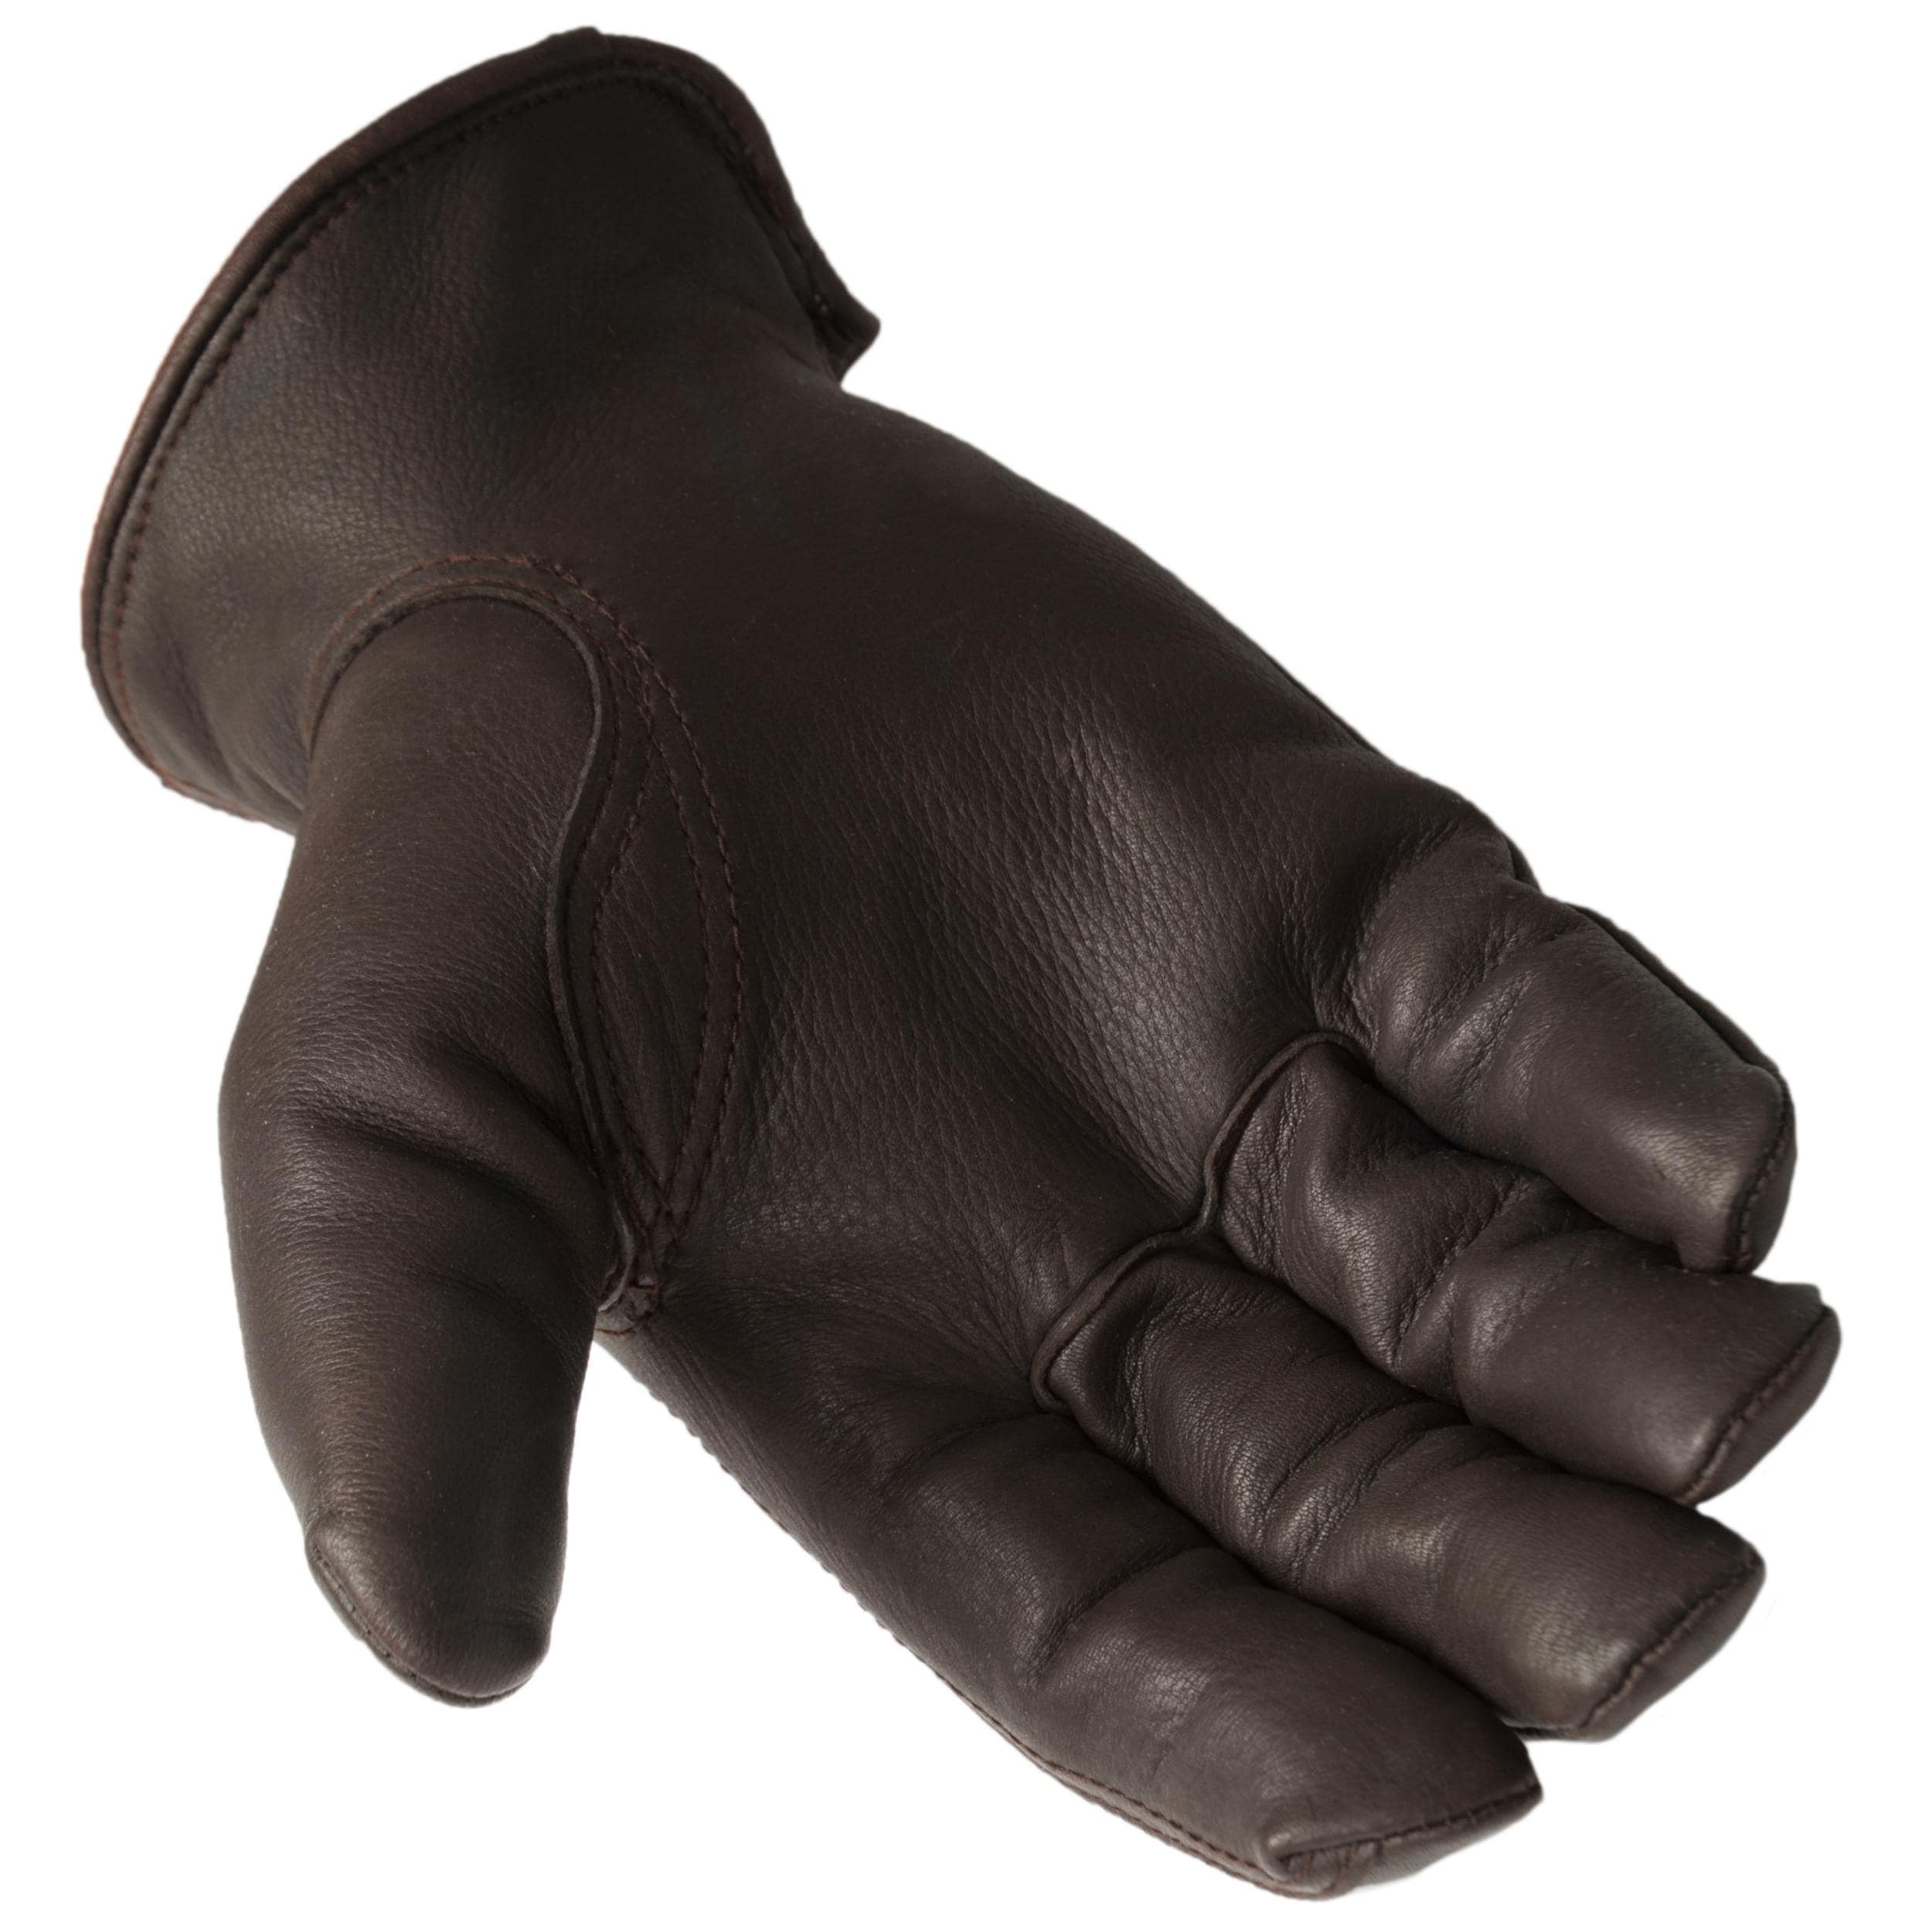 Daxx Men's Top Grain Deerskin Leather Bird Dog Print Lined Gloves